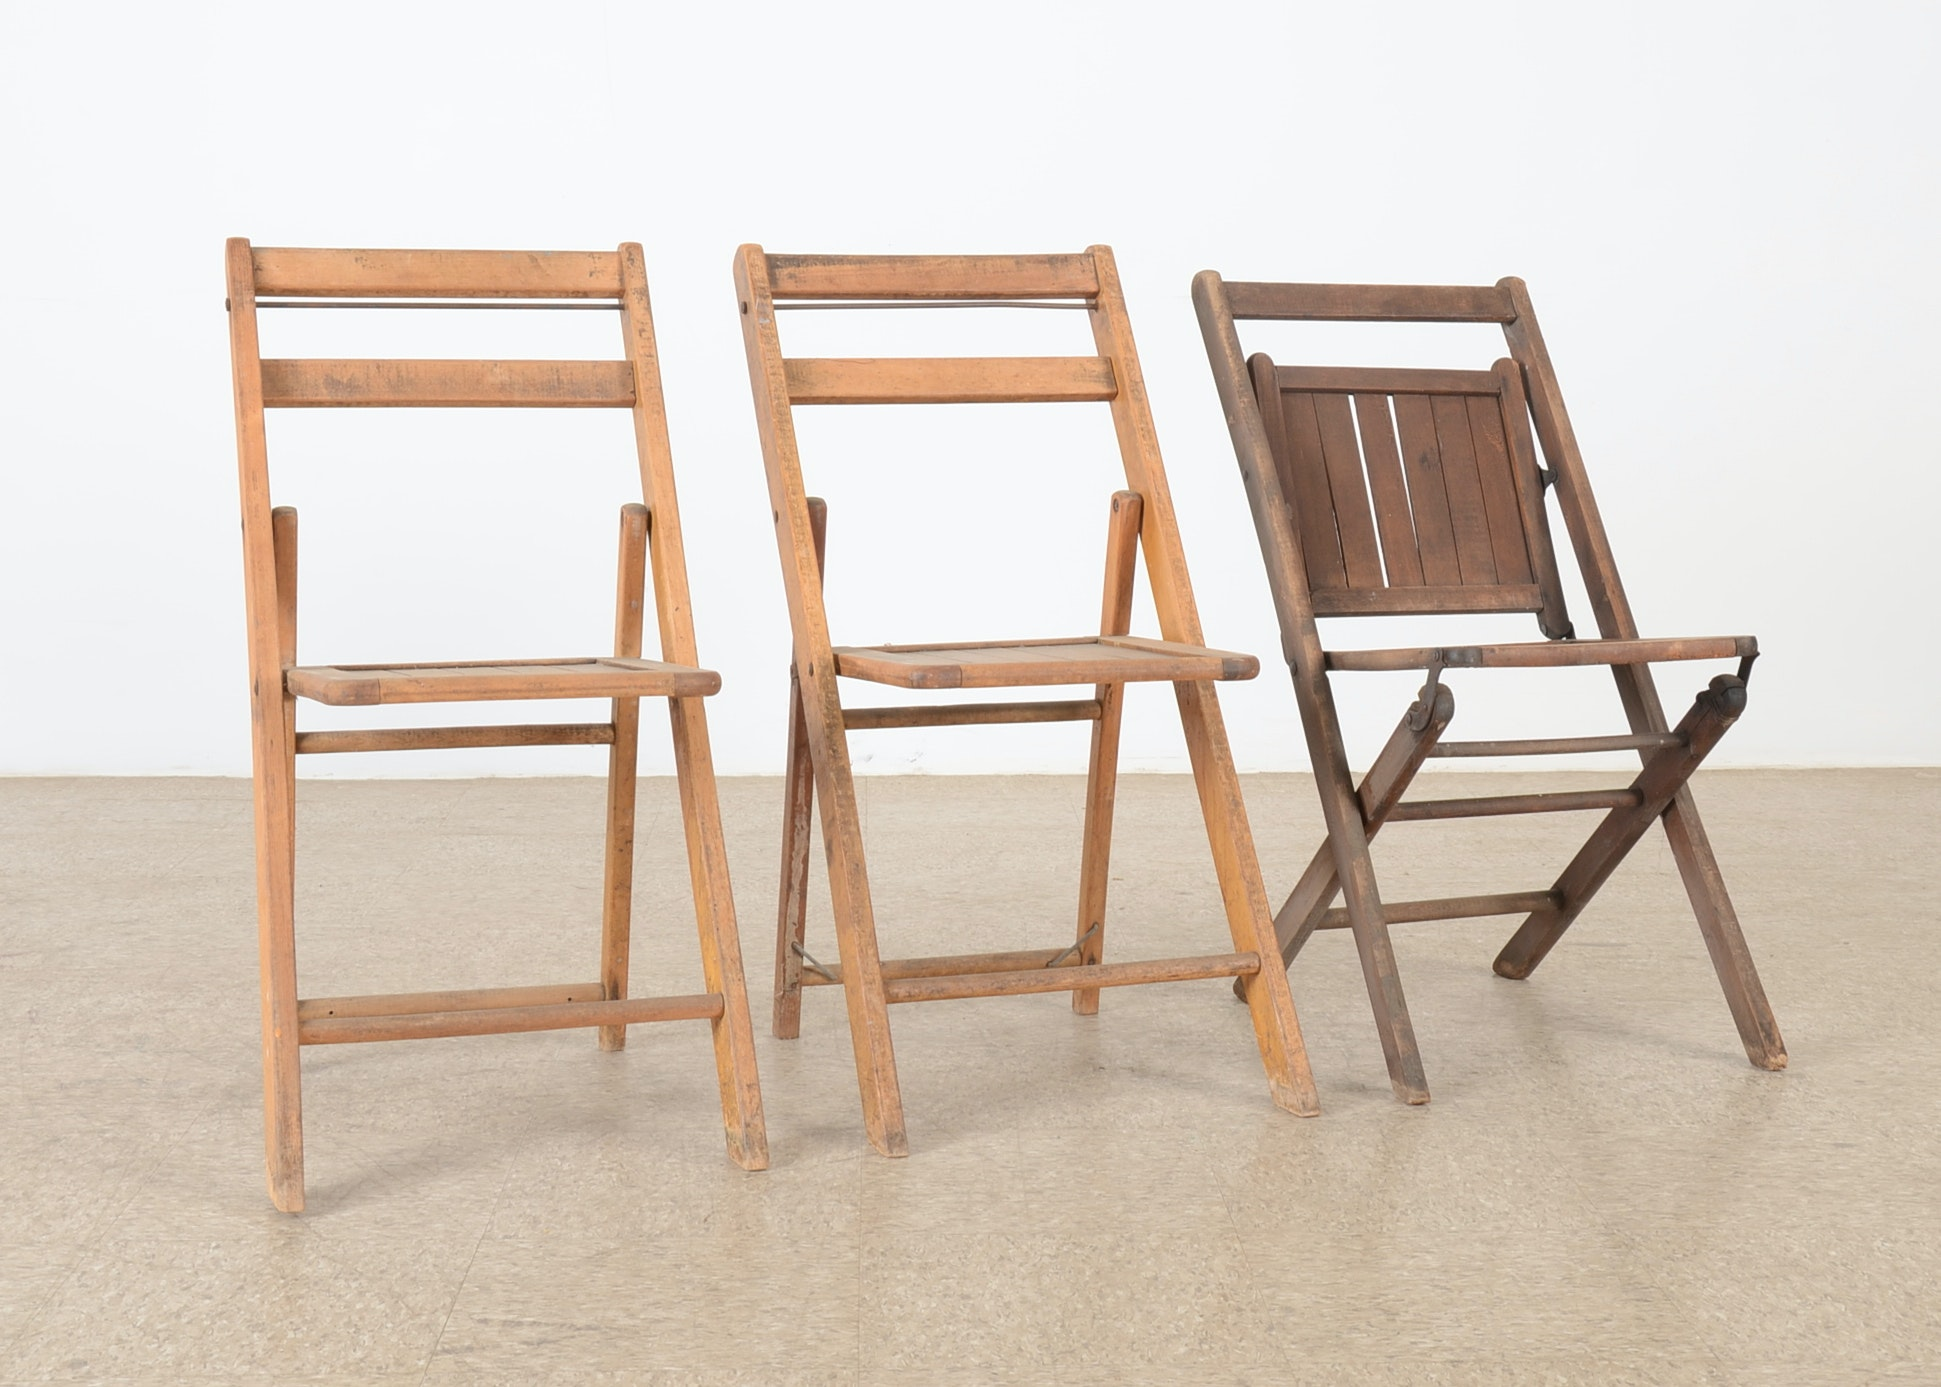 A Set Of Three Antique Wooden Folding Chairs